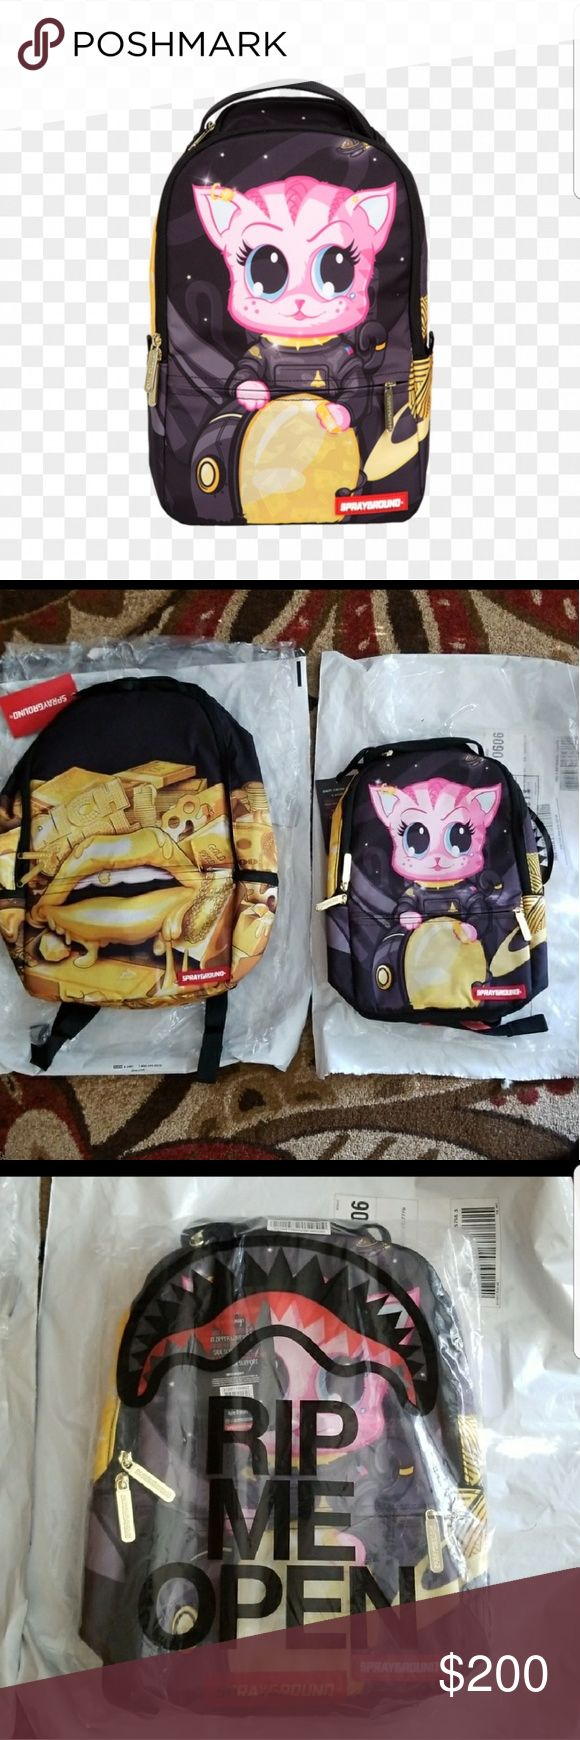 Sold out lil kitstronaut Mini backpack 2nd picture shows it in comparison to a normal spray ground bpk its just too big for me i wanted something smaller Tags hottopic iron fist doll skill unif killstar unisex dropdead kawaii too fast sprayground Bags